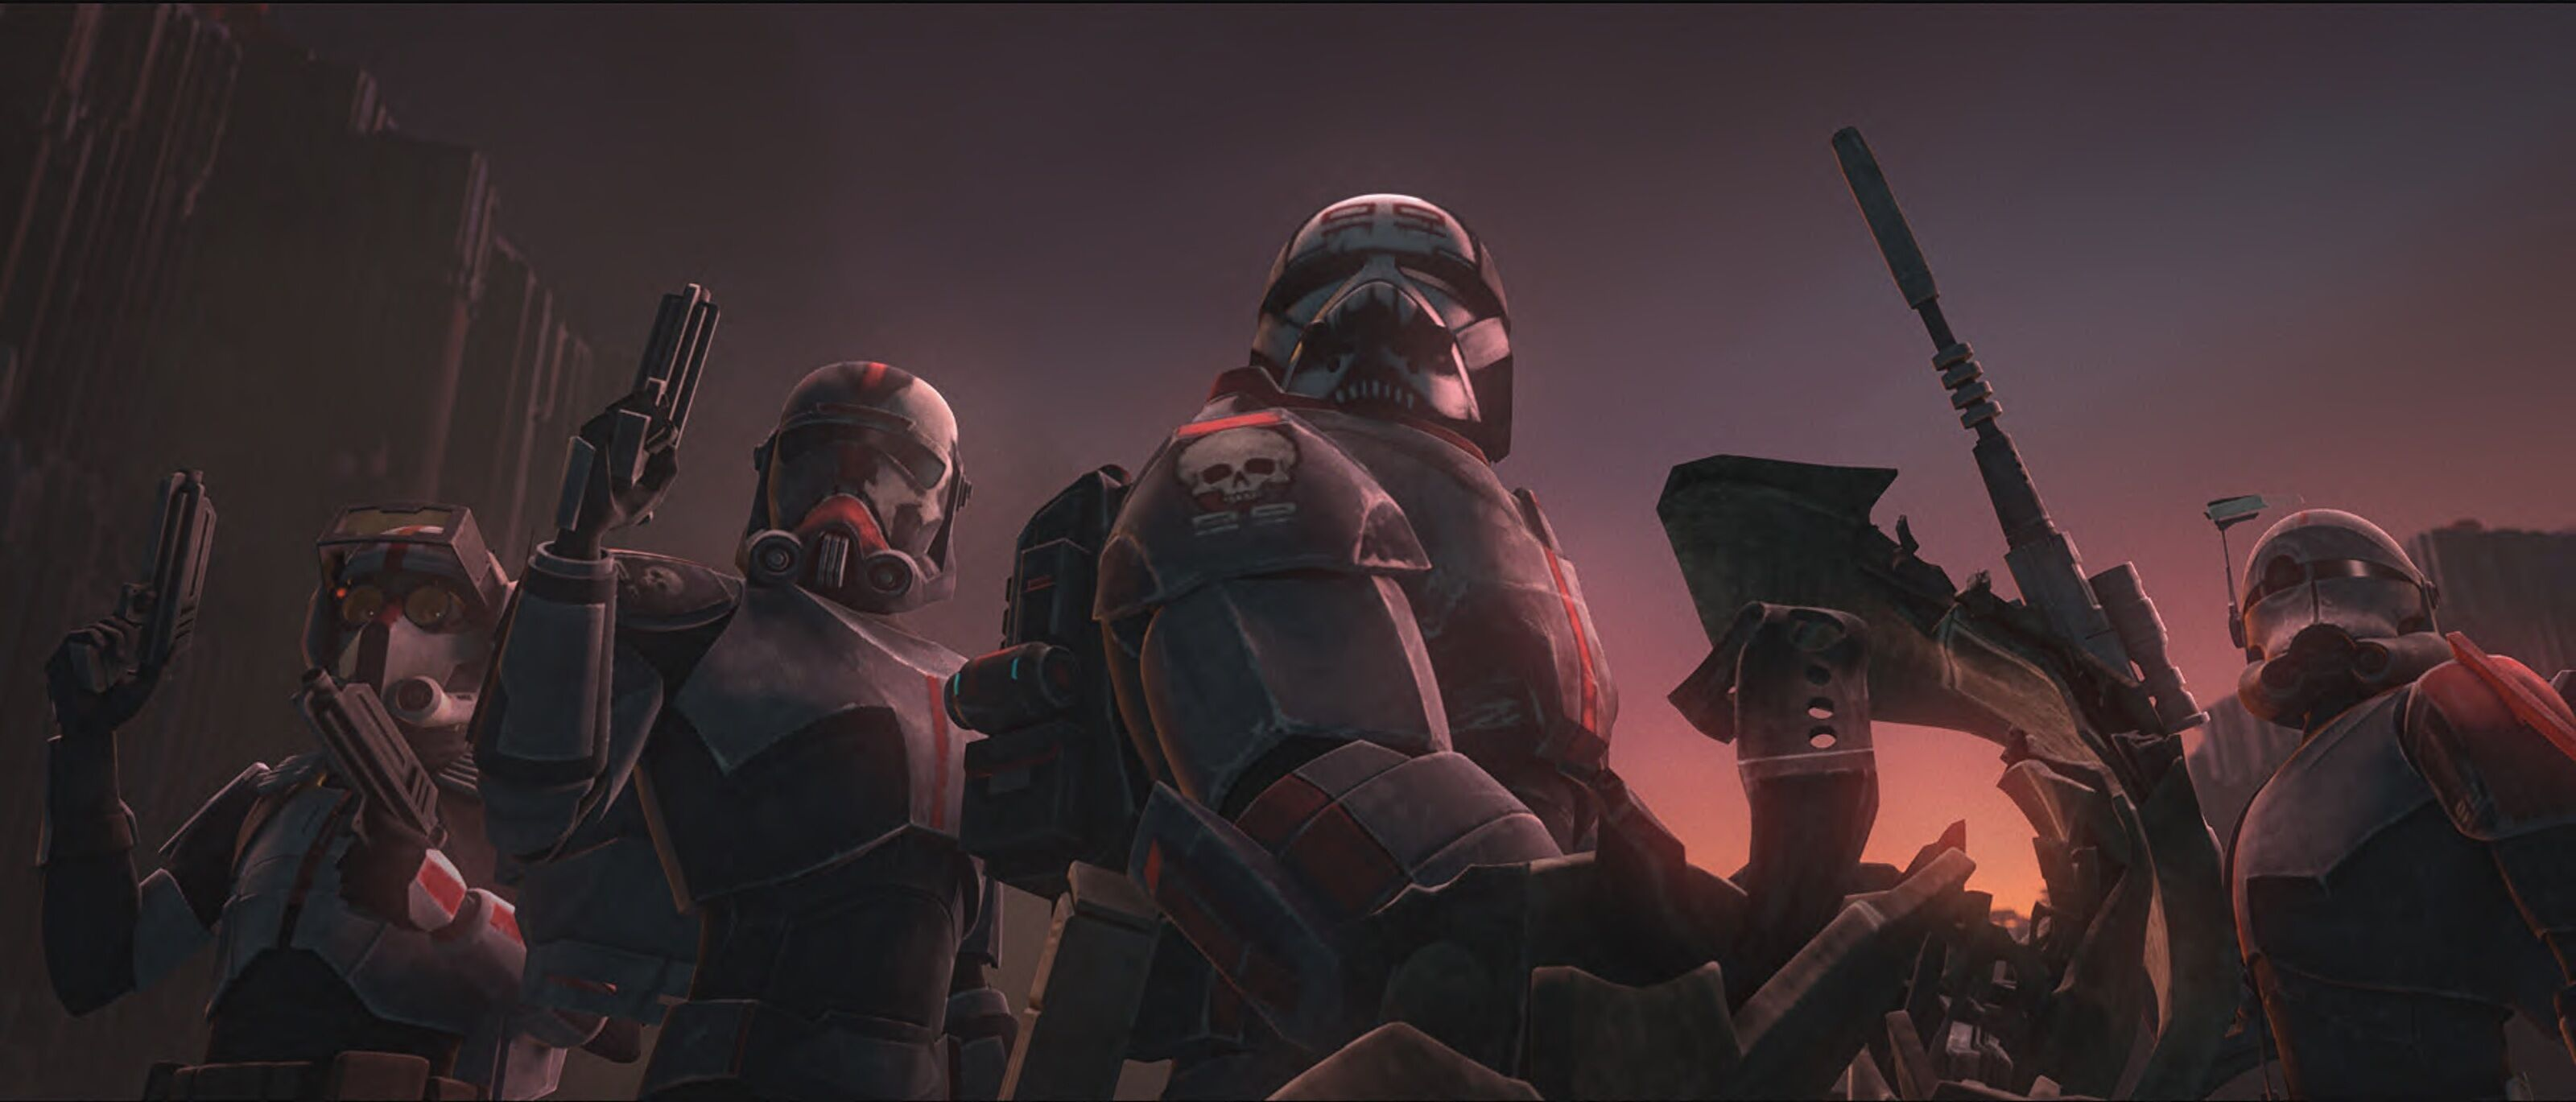 Who are The Bad Batch? Star Wars: The Clone Wars